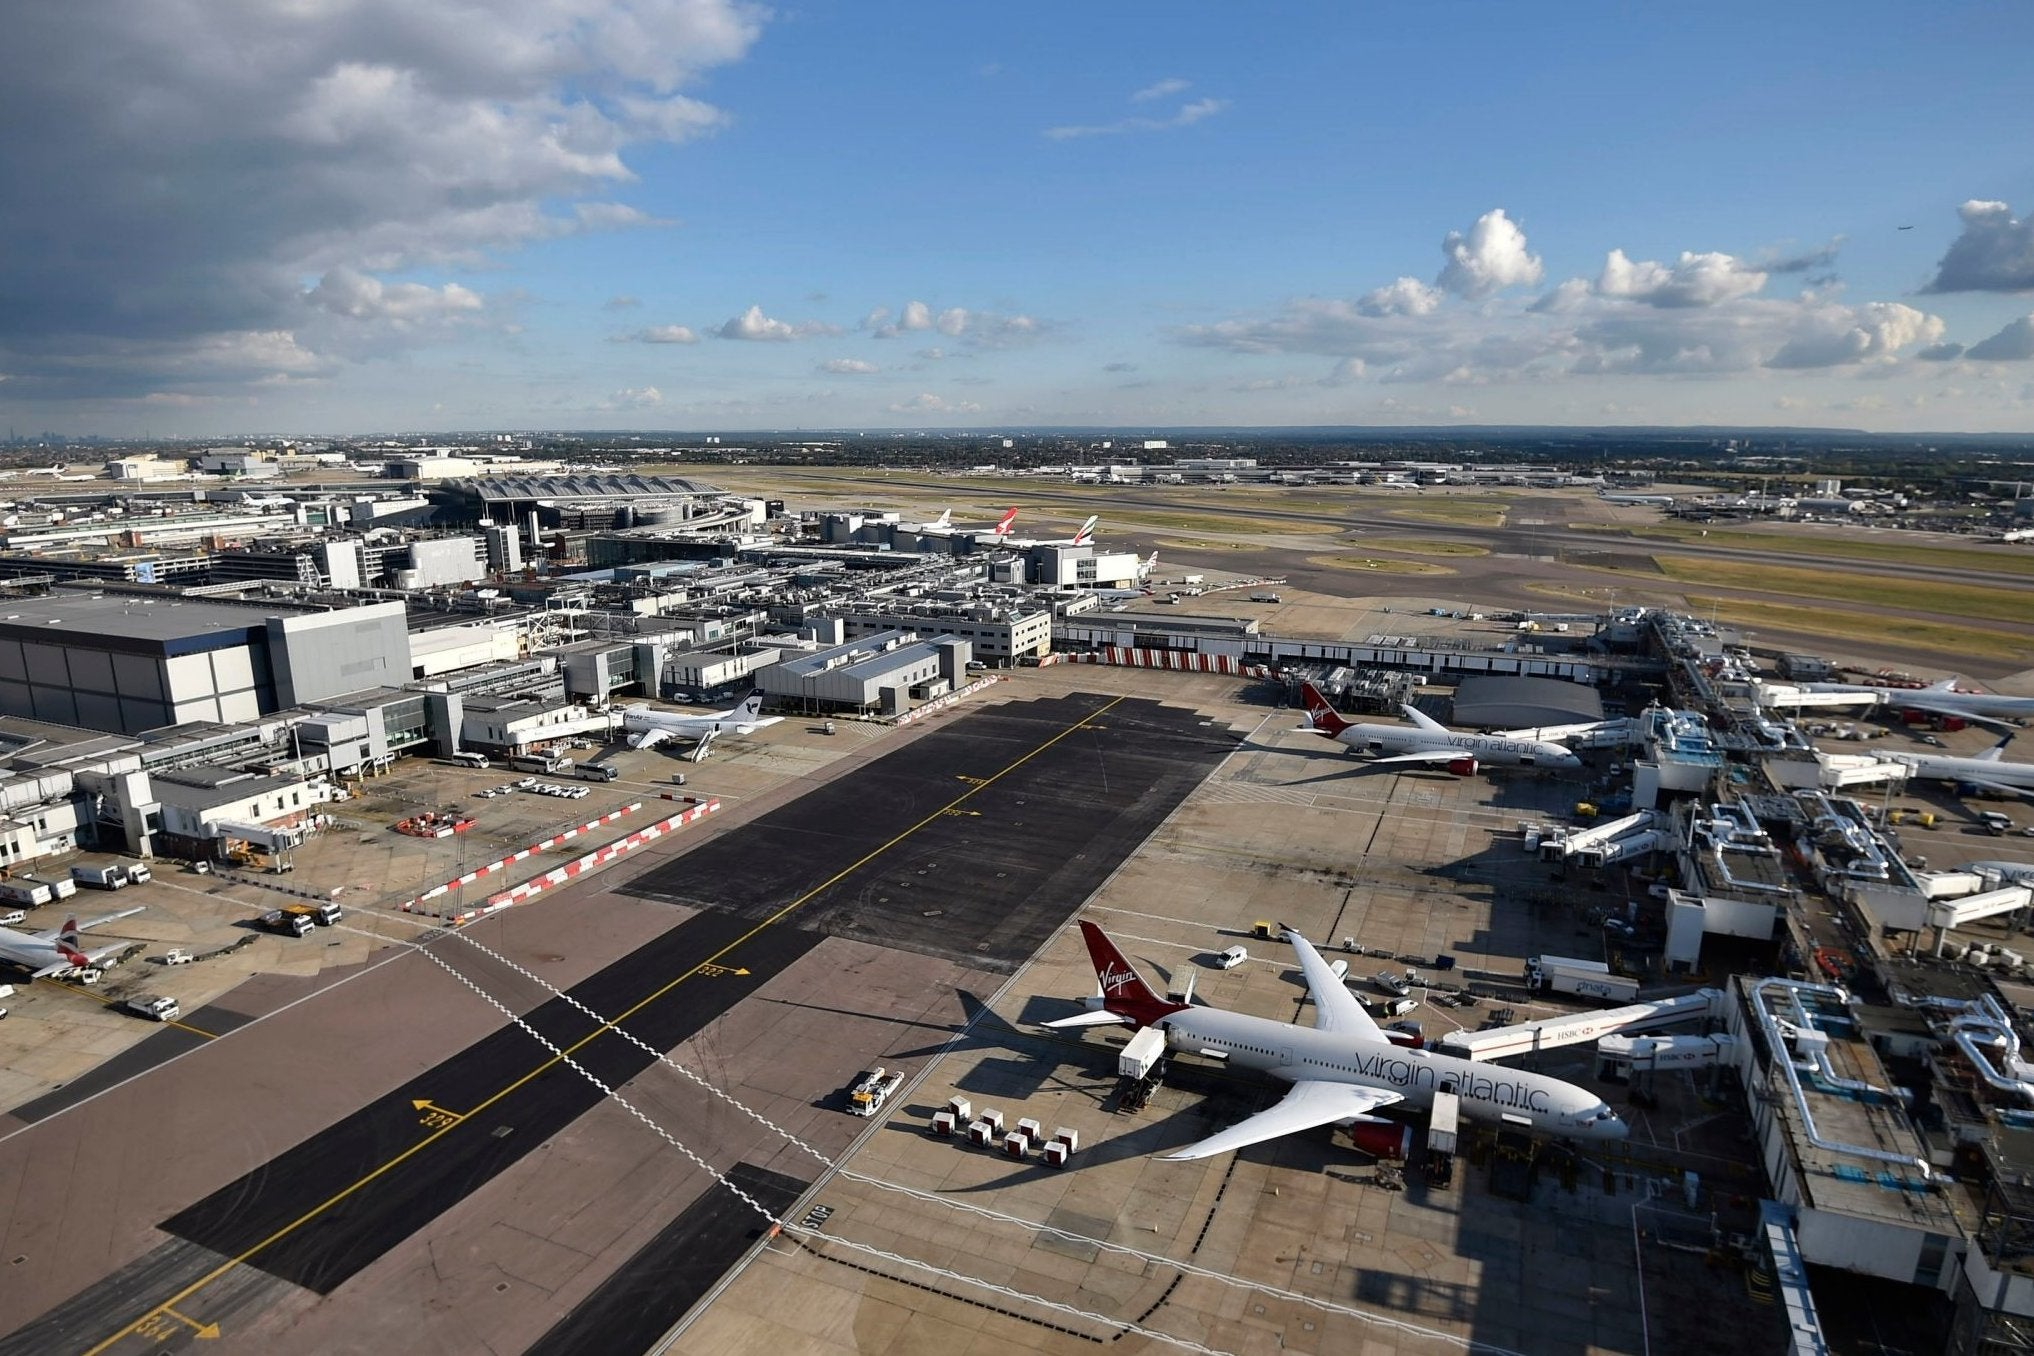 Heathrow Airport's third runway should be scrapped and all growth halted, says report